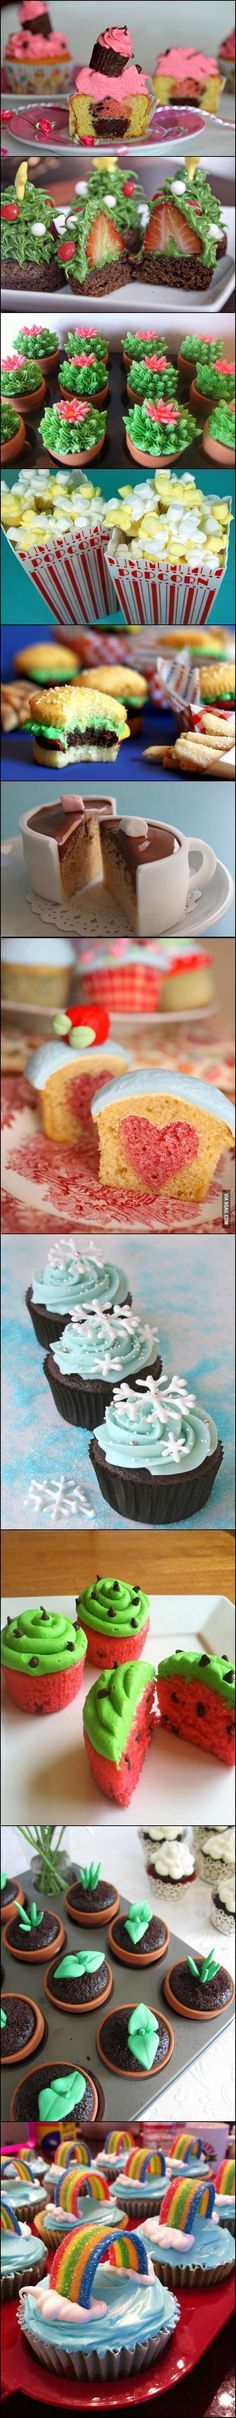 Brought to you by people with a lot of time on their hands: Creative Cupcake Decorating. #cupcakes